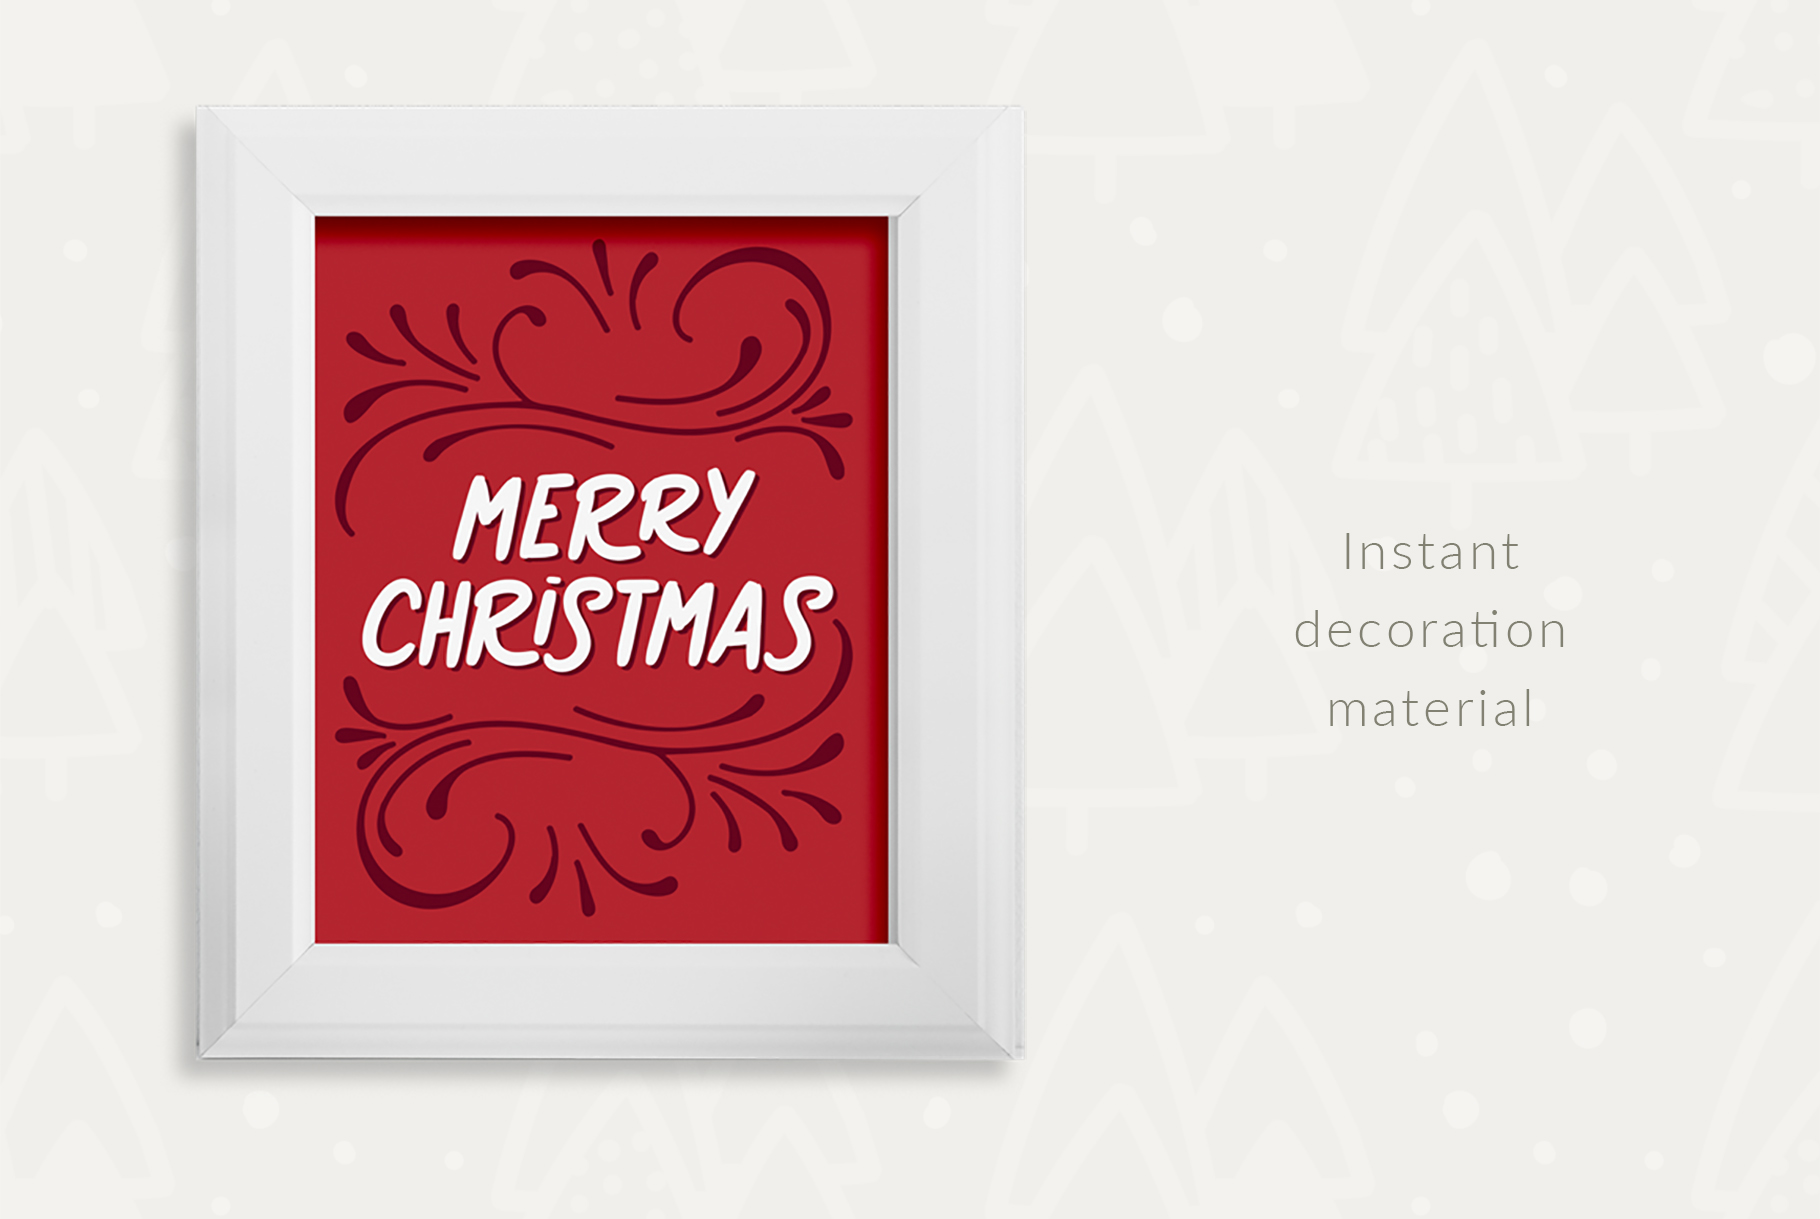 Sweet Christmas Cards & Posters example image 3